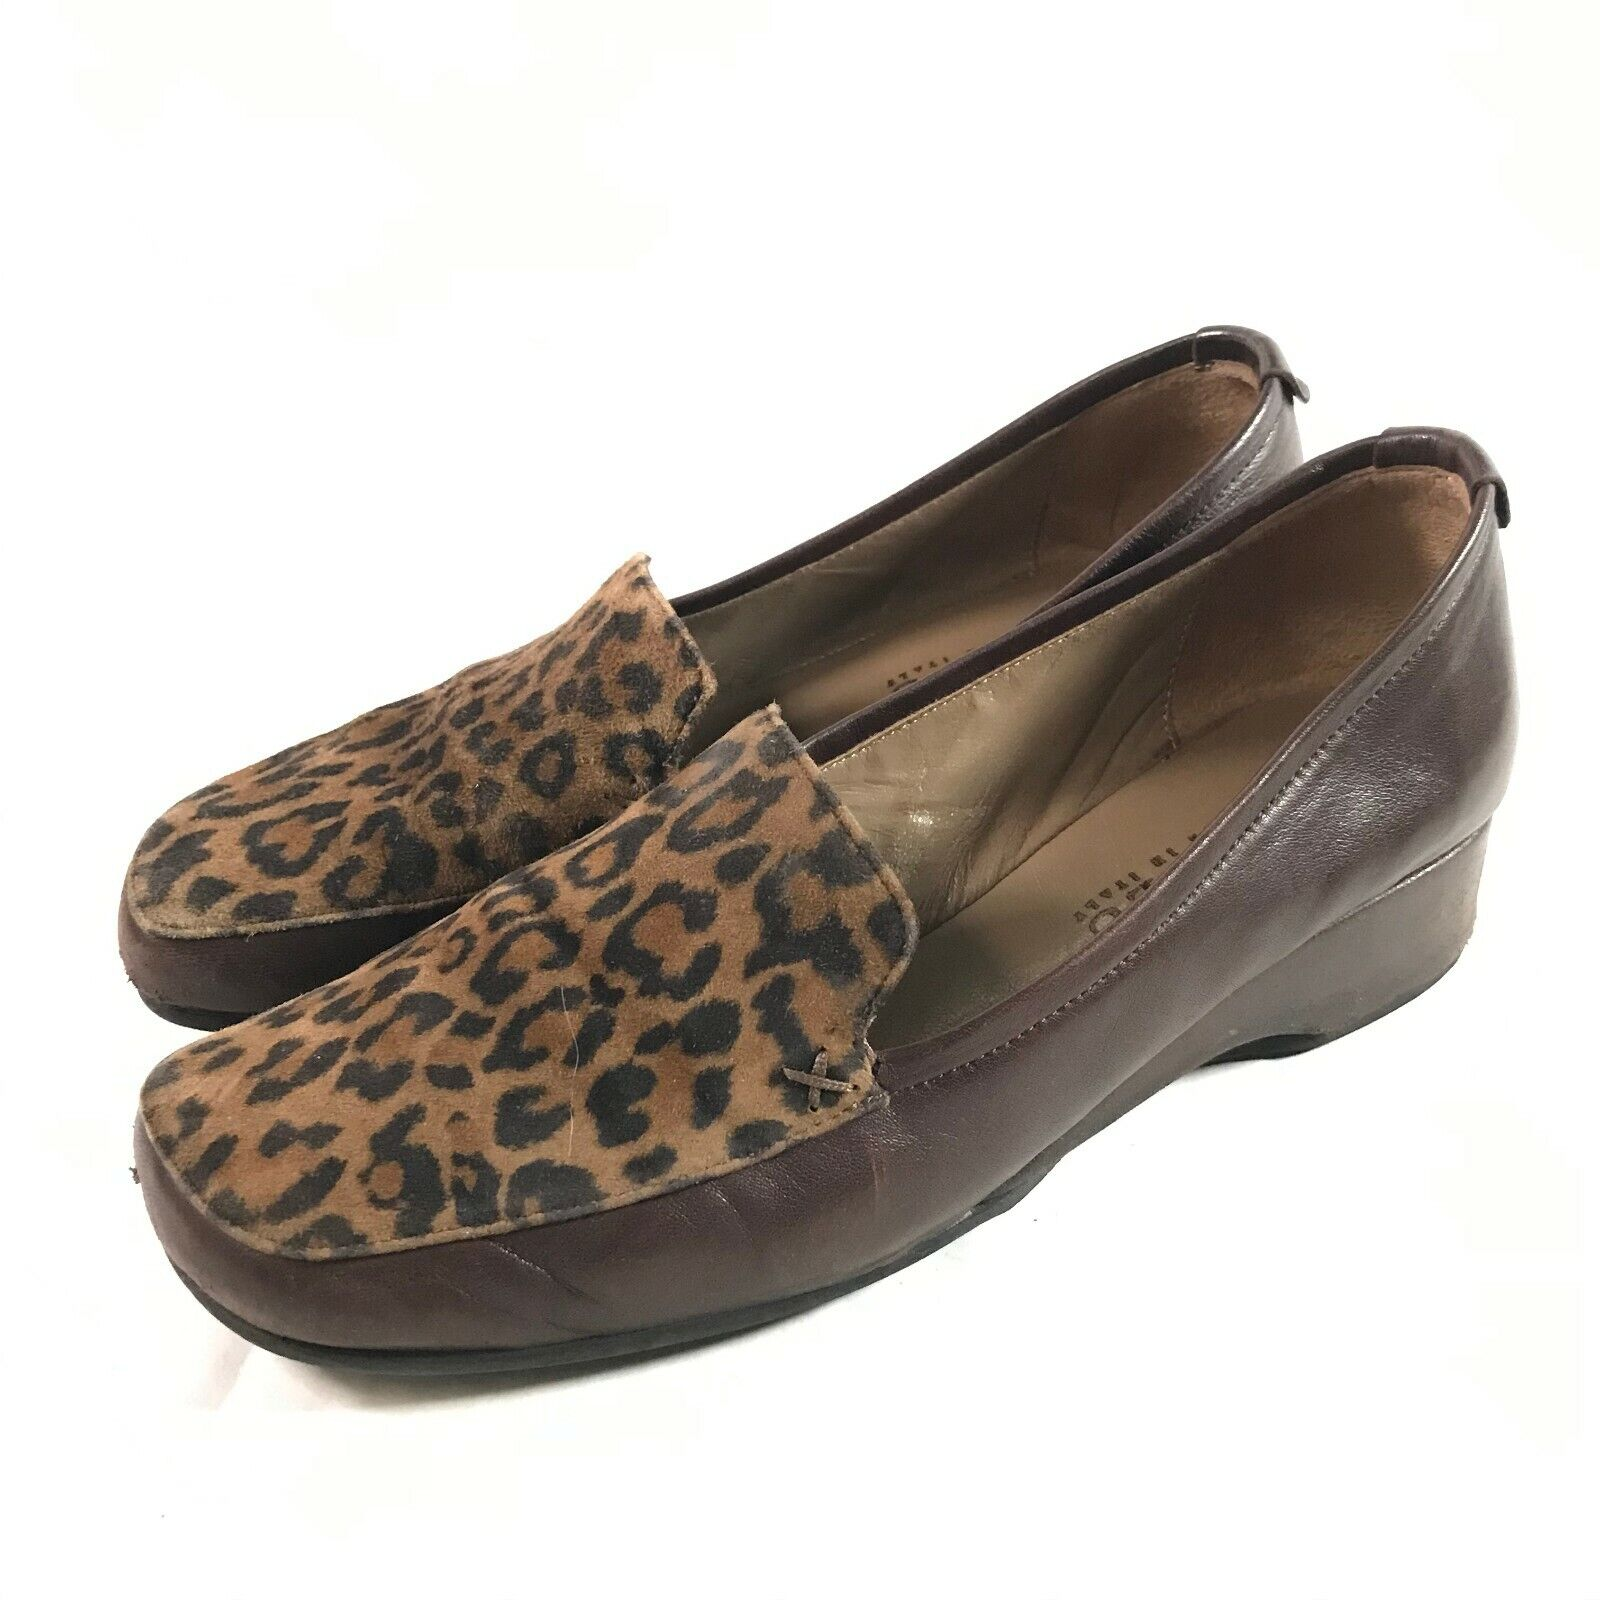 Womens size 37.5 Anyi Lu GABY leopard shoes